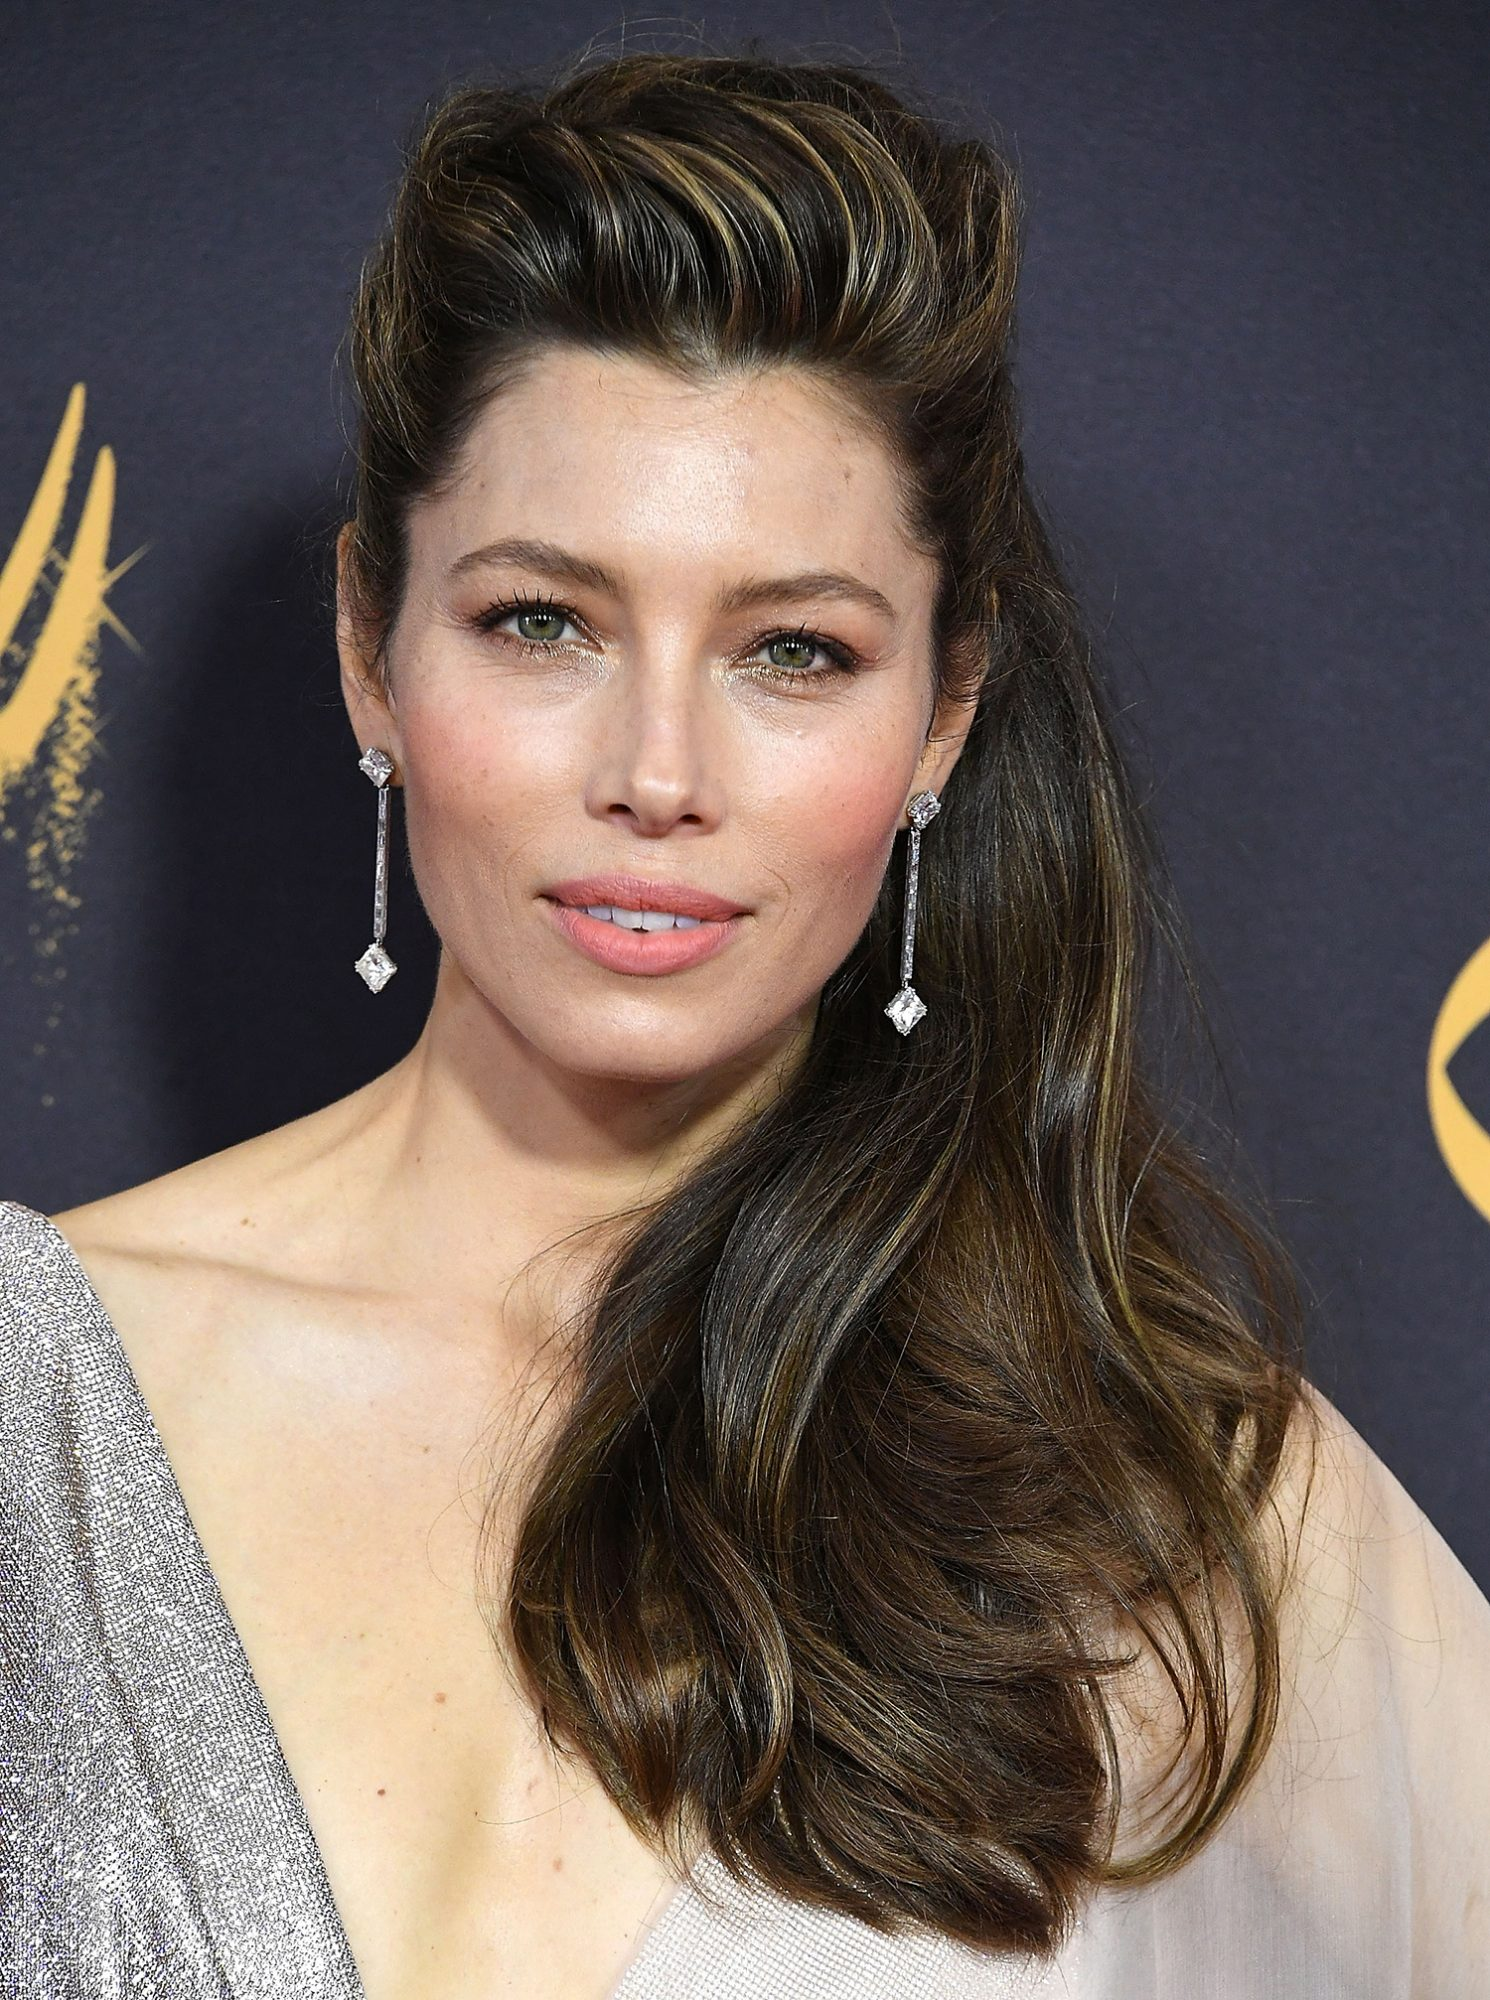 Jessica Biel in Half-Up Hairdo